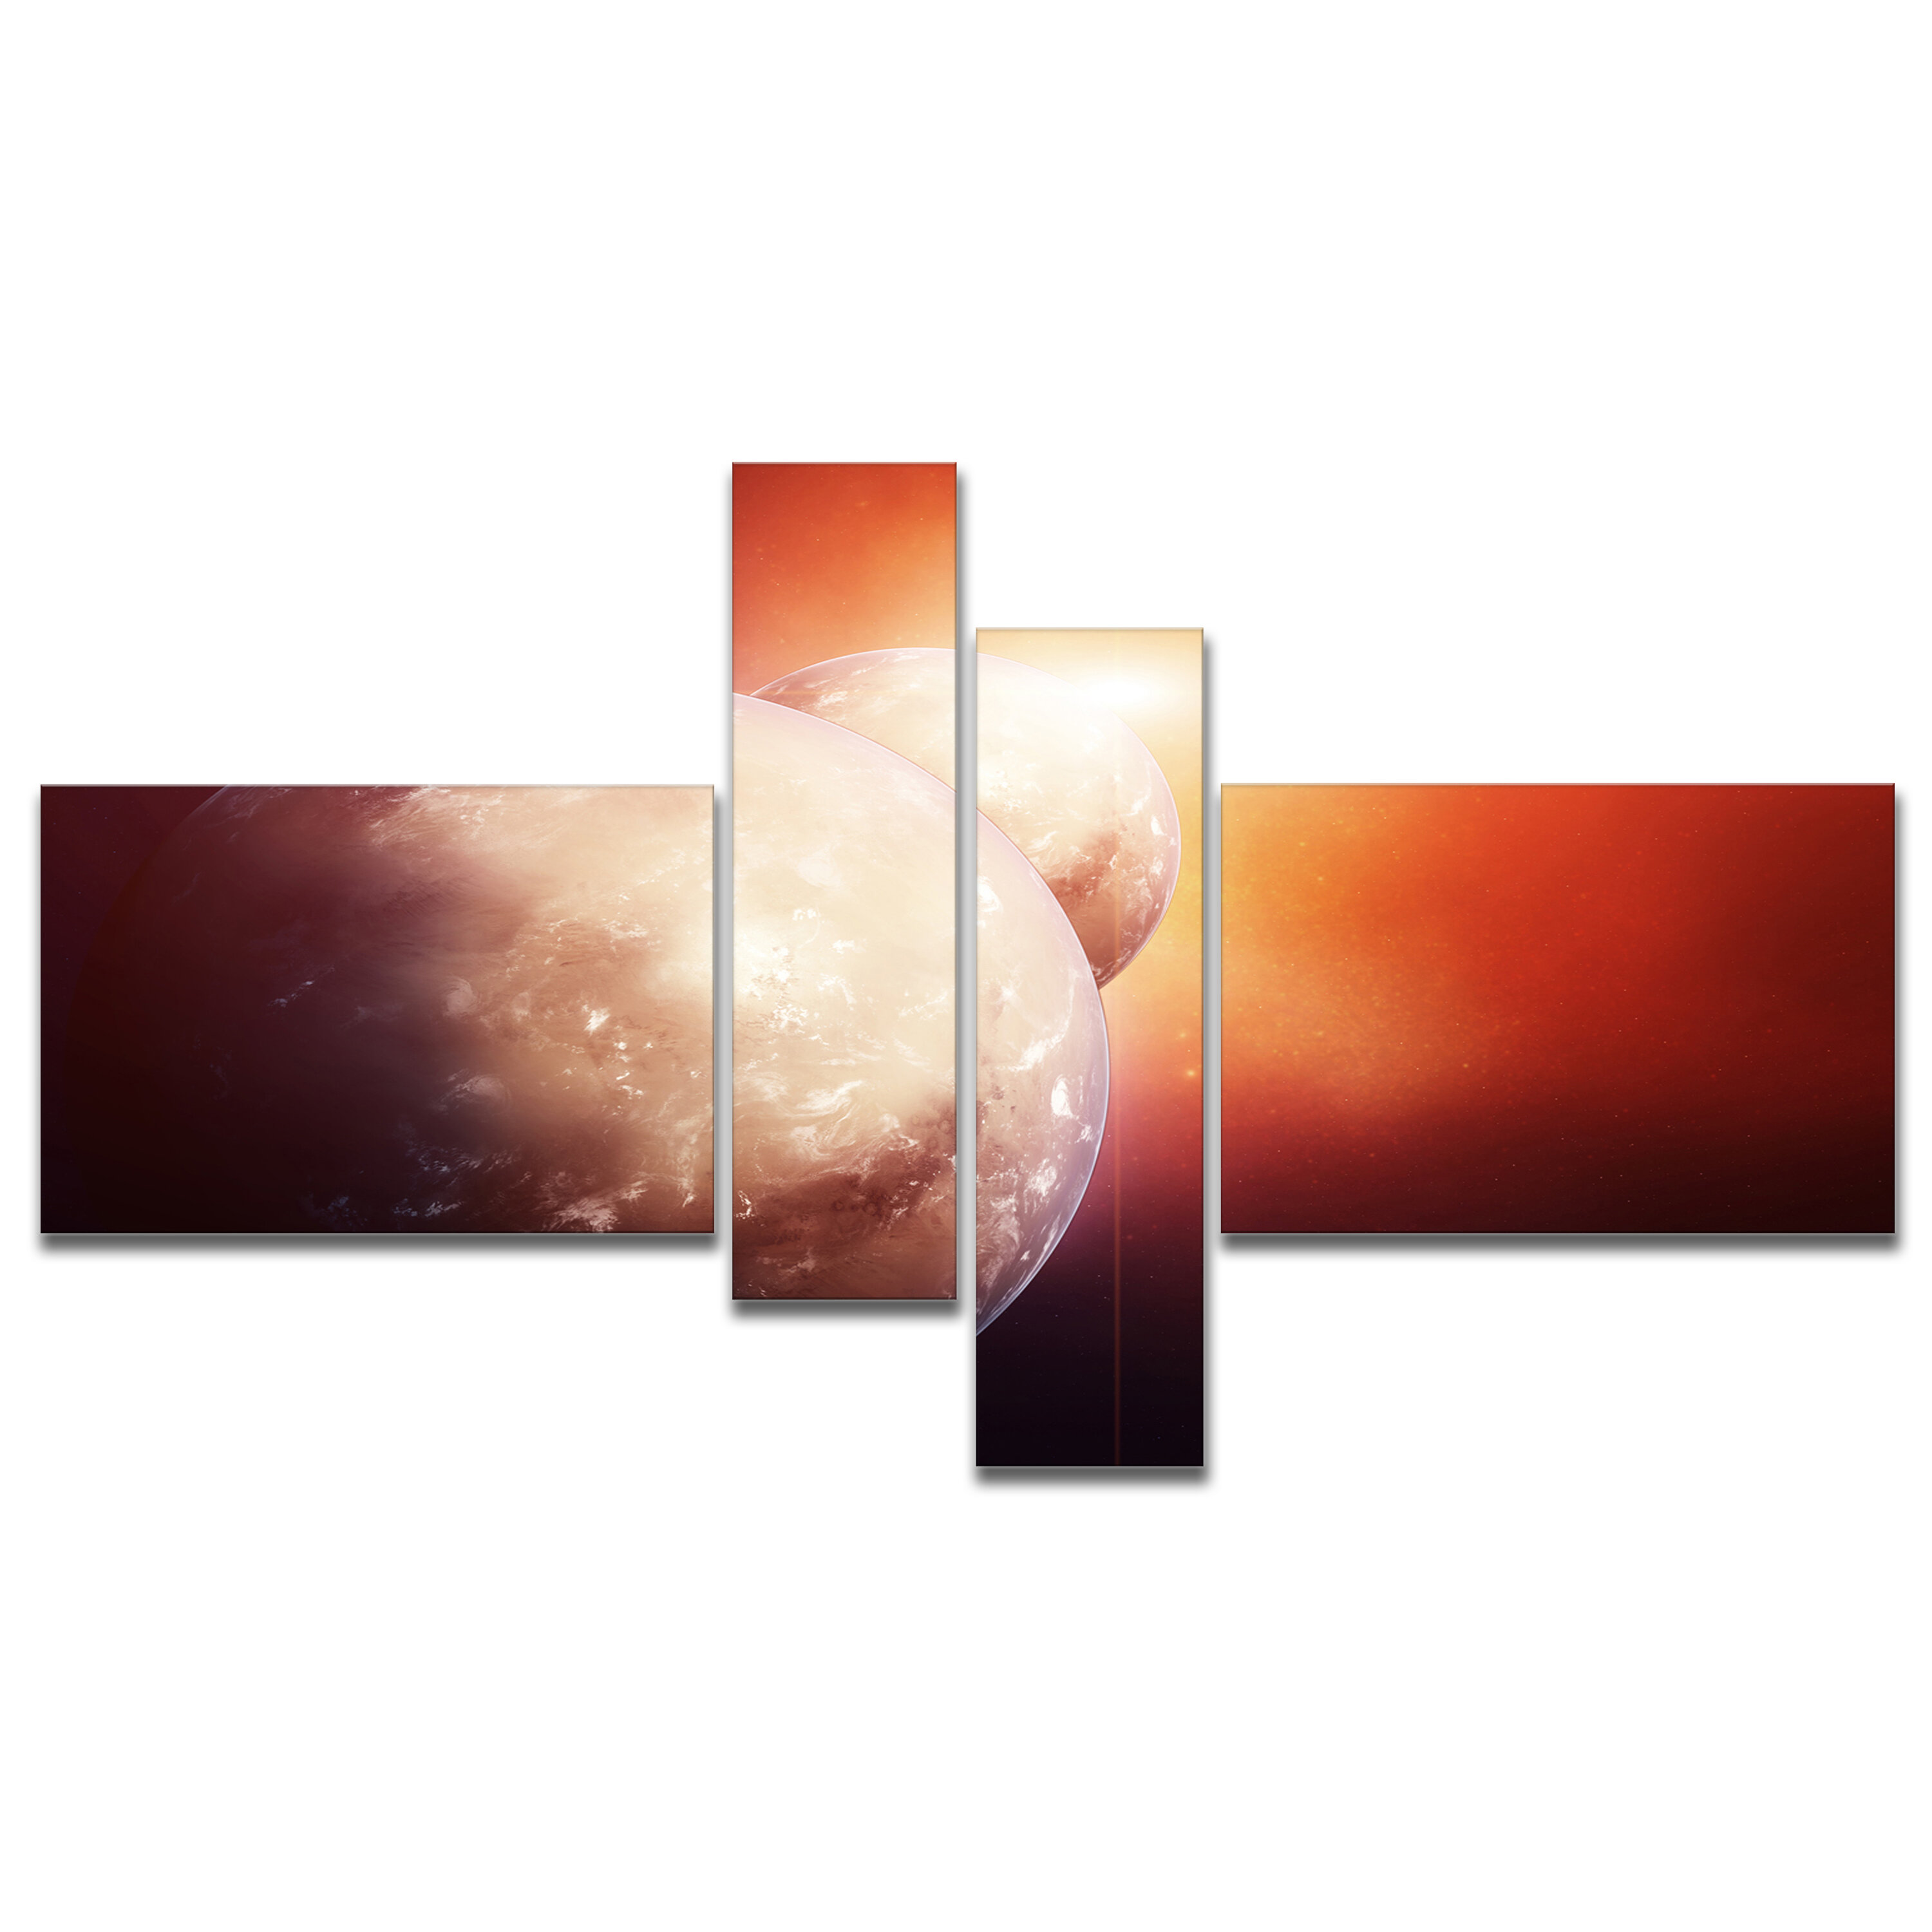 East Urban Home Planets With Rising Star Graphic Art Print Multi Piece Image On Canvas Wayfair